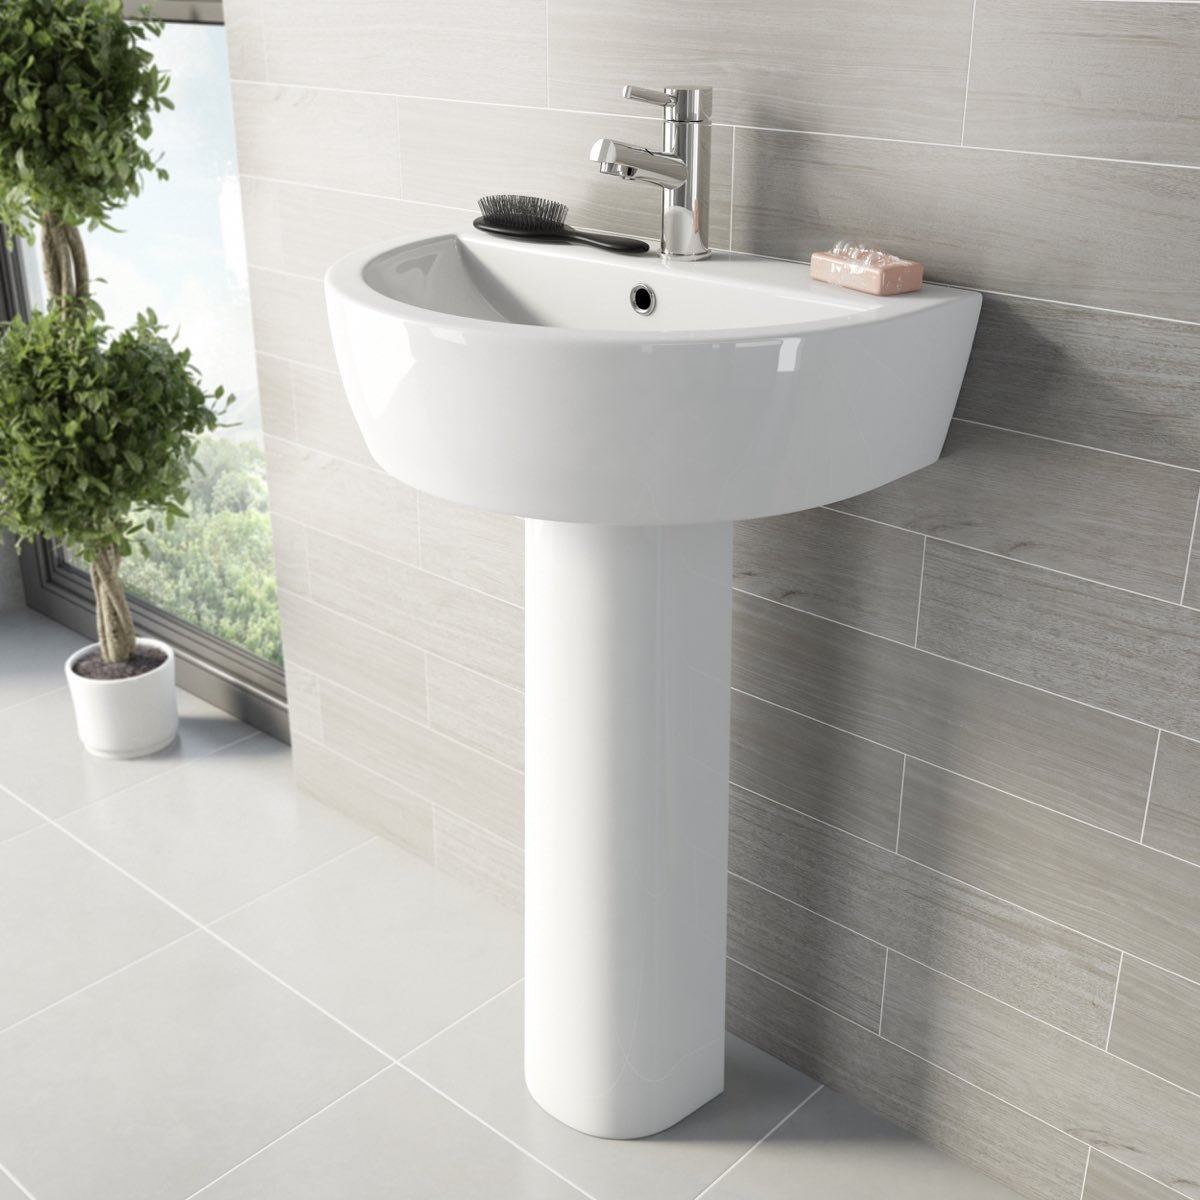 Mode Arte Bathroom Suite With Arte Freestanding Bath 1500